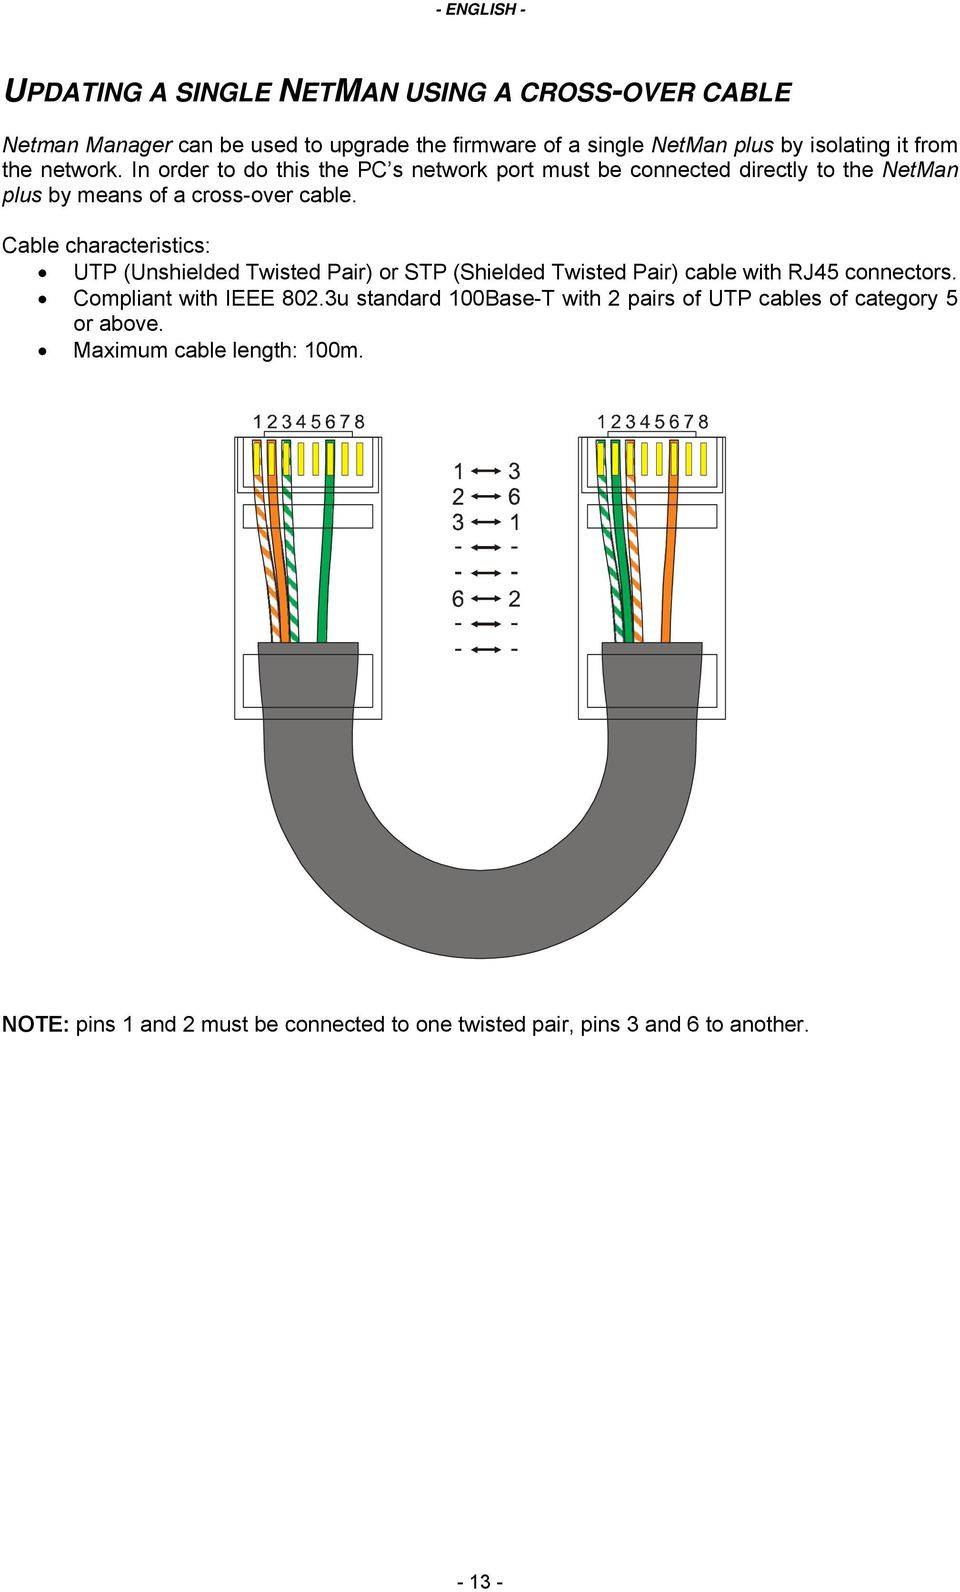 Cable characteristics: UTP (Unshielded Twisted Pair) or STP (Shielded Twisted Pair) cable with RJ45 connectors. Compliant with IEEE 802.